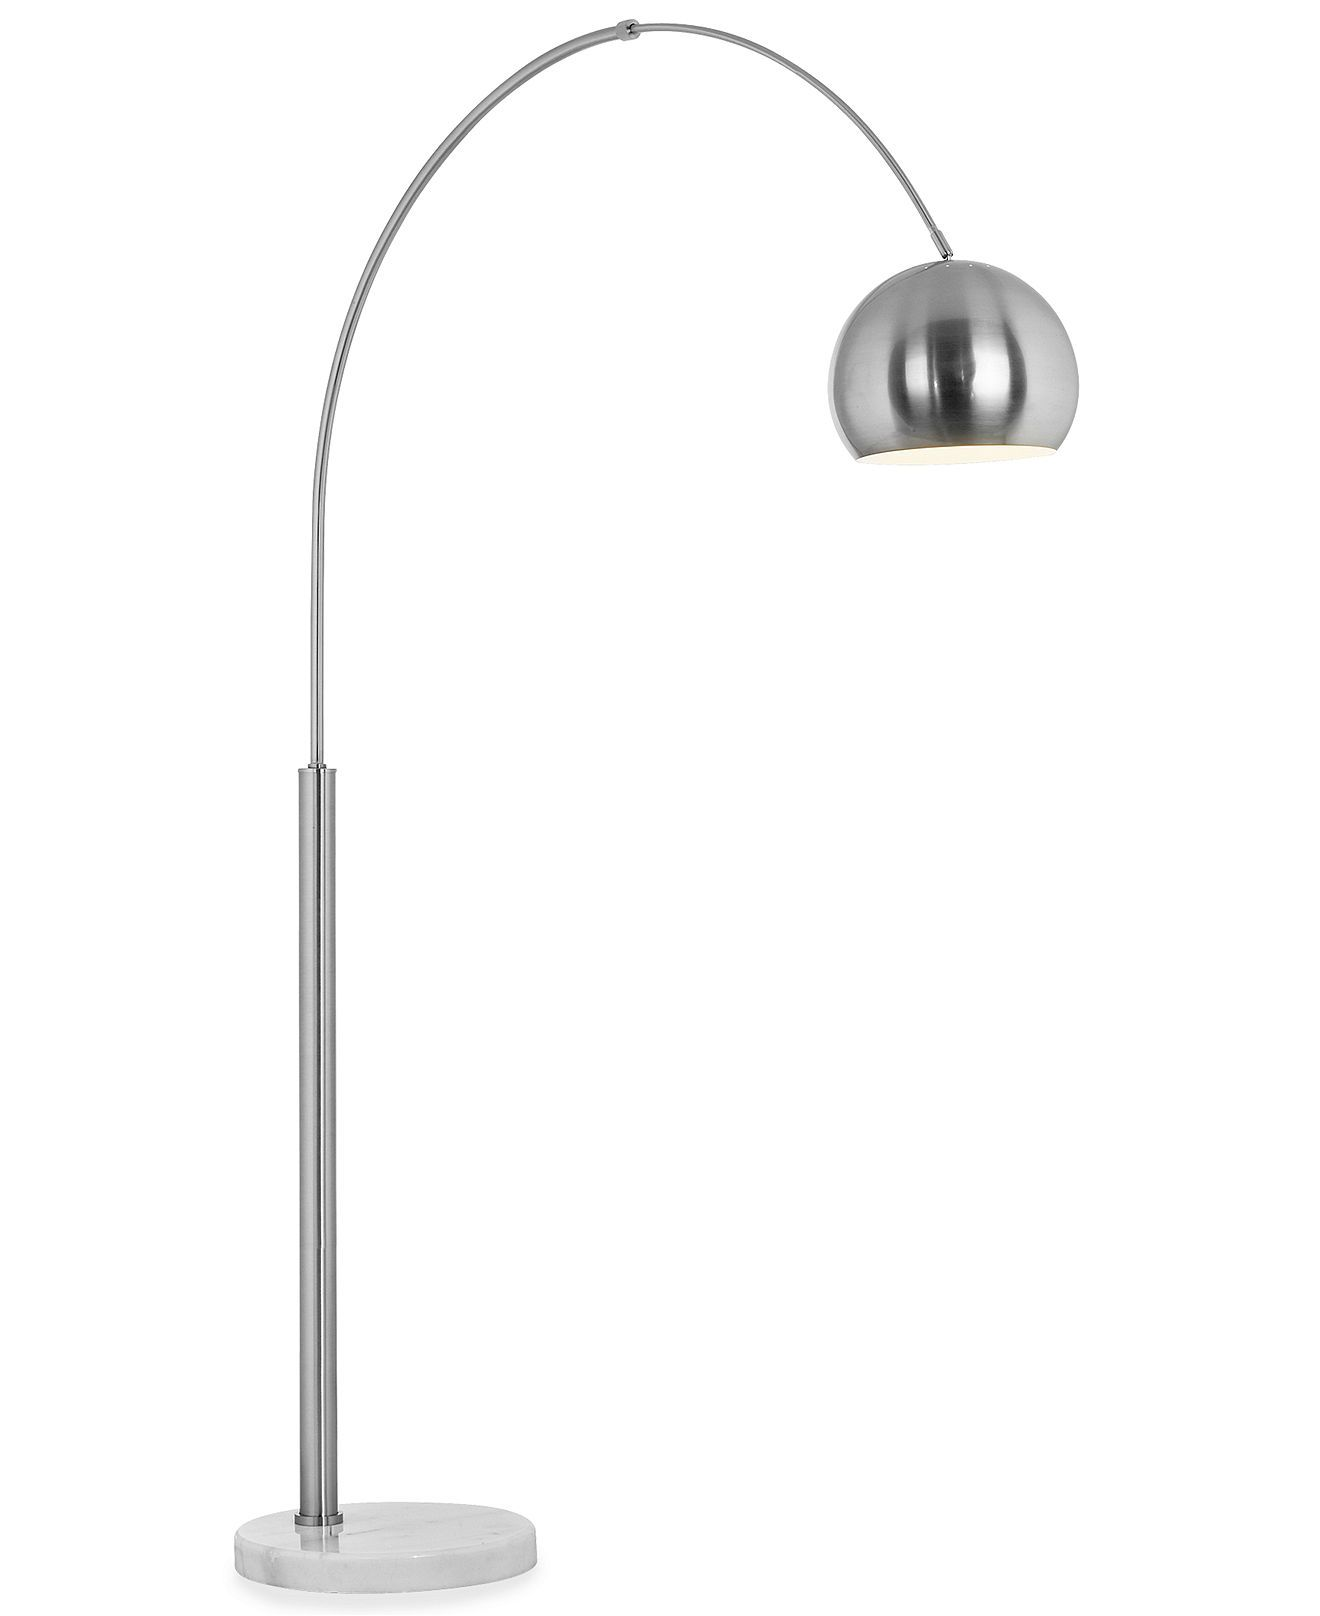 Pacific Coast Basque Arc Nickel Floor Lamp Floor Lamp